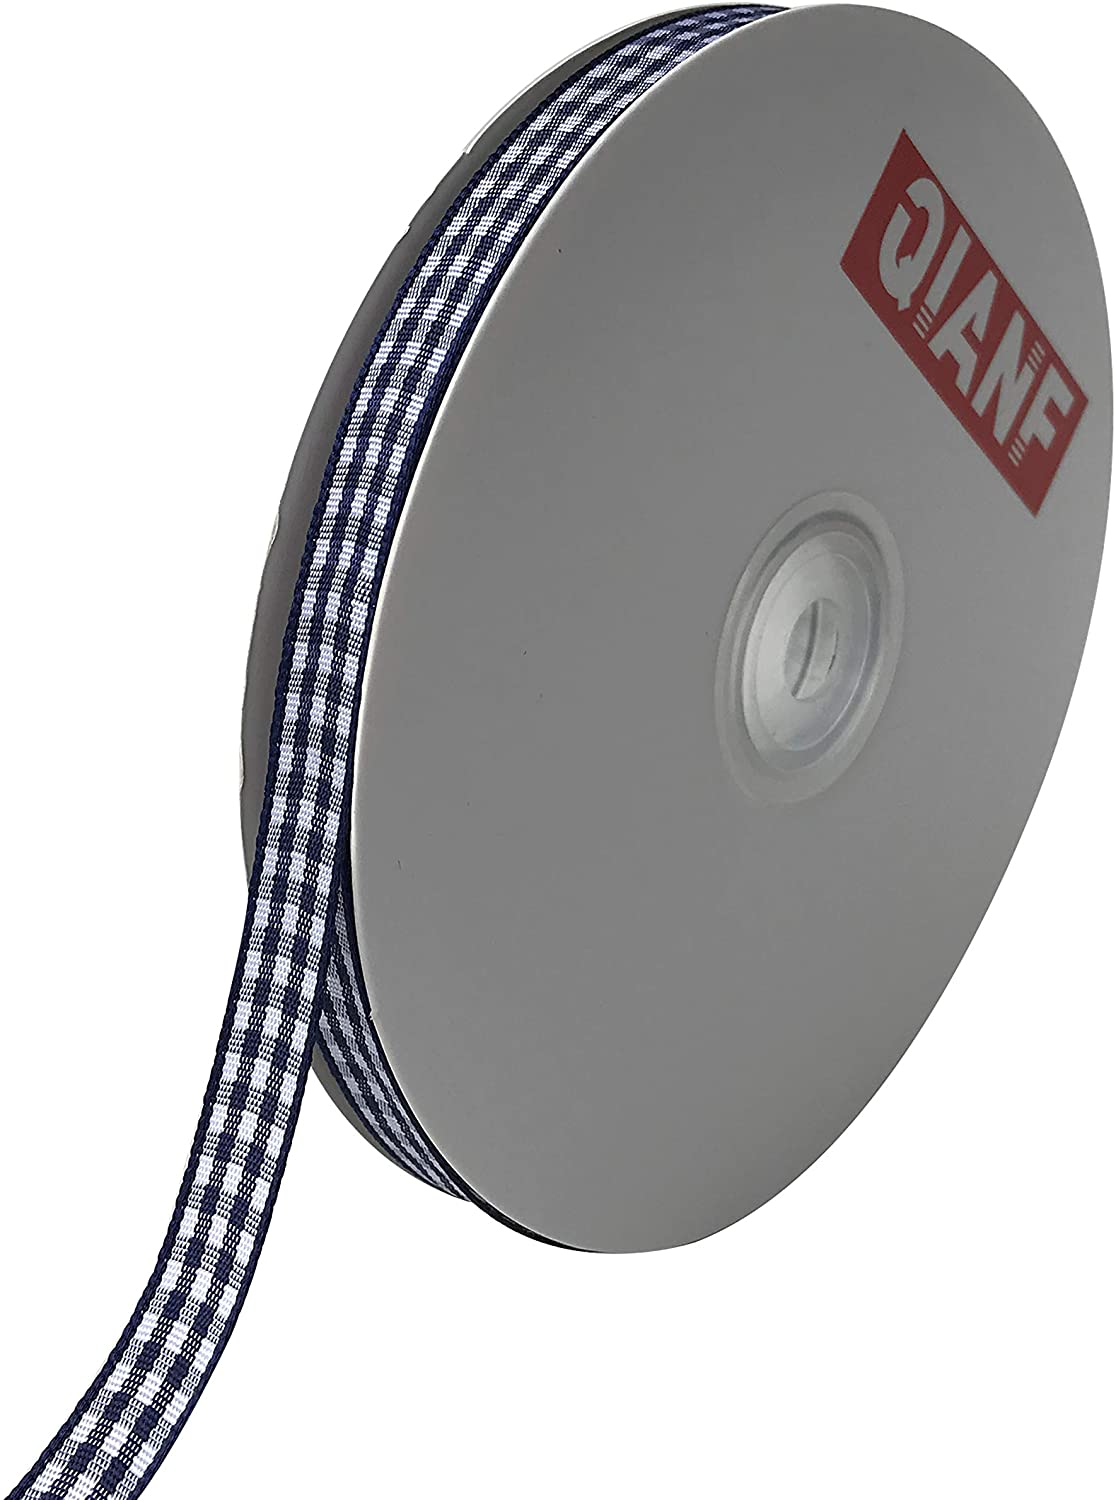 QIANF 1 Inch Wide Gingham Woven Edge Ribbon, Checkered Craft, 50 Yards Long Per Spool(Navy)